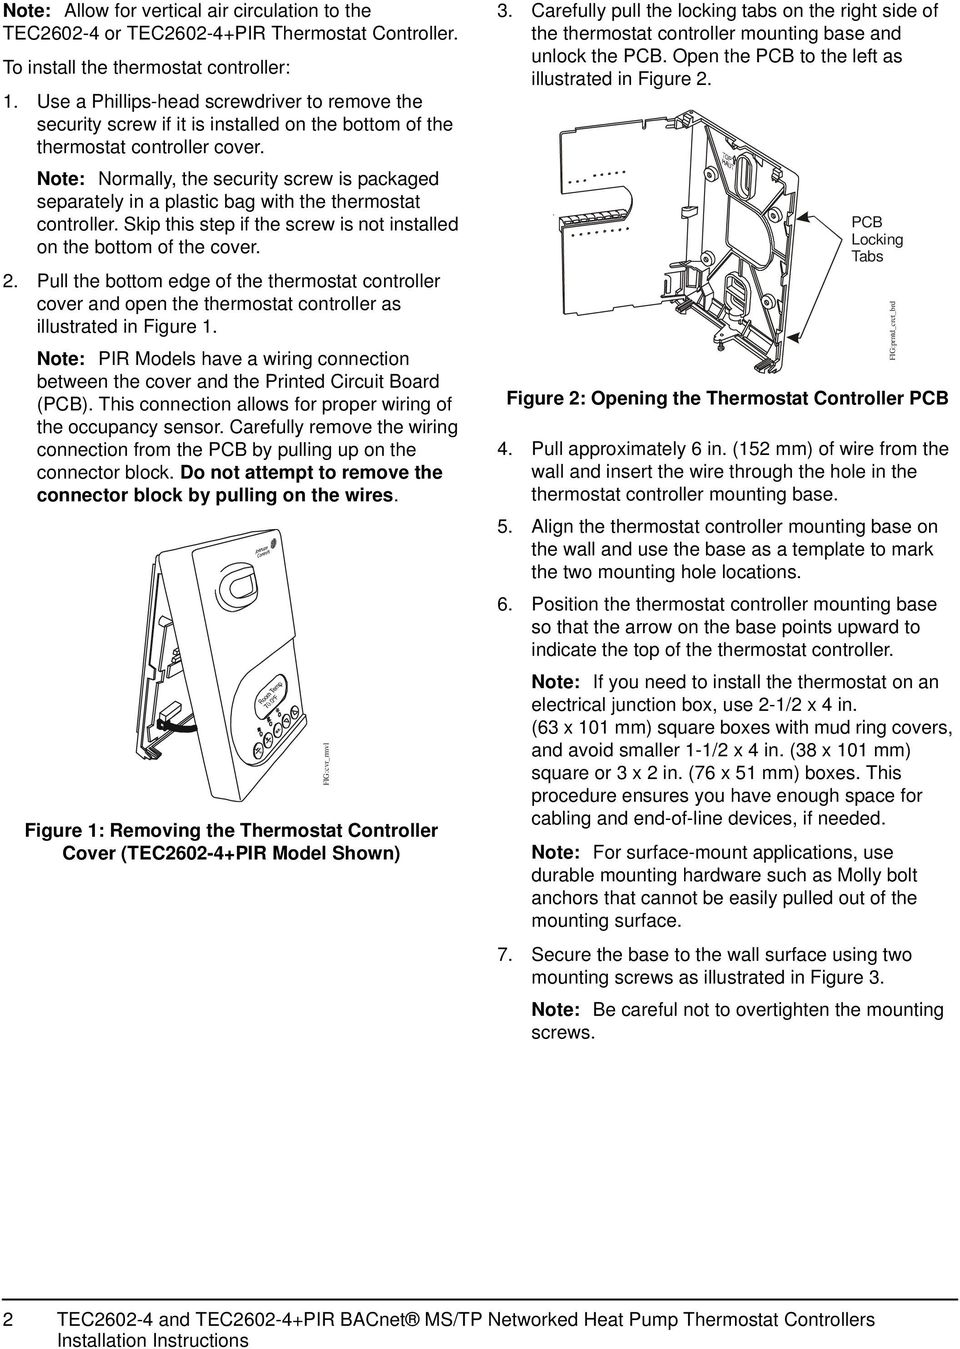 Tec And Pir Bacnet Ms Tp Networked Heat Pump Thermostat Alarm Wiring Instructions Note Normally The Security Screw Is Packaged Separately In A Plastic Bag With